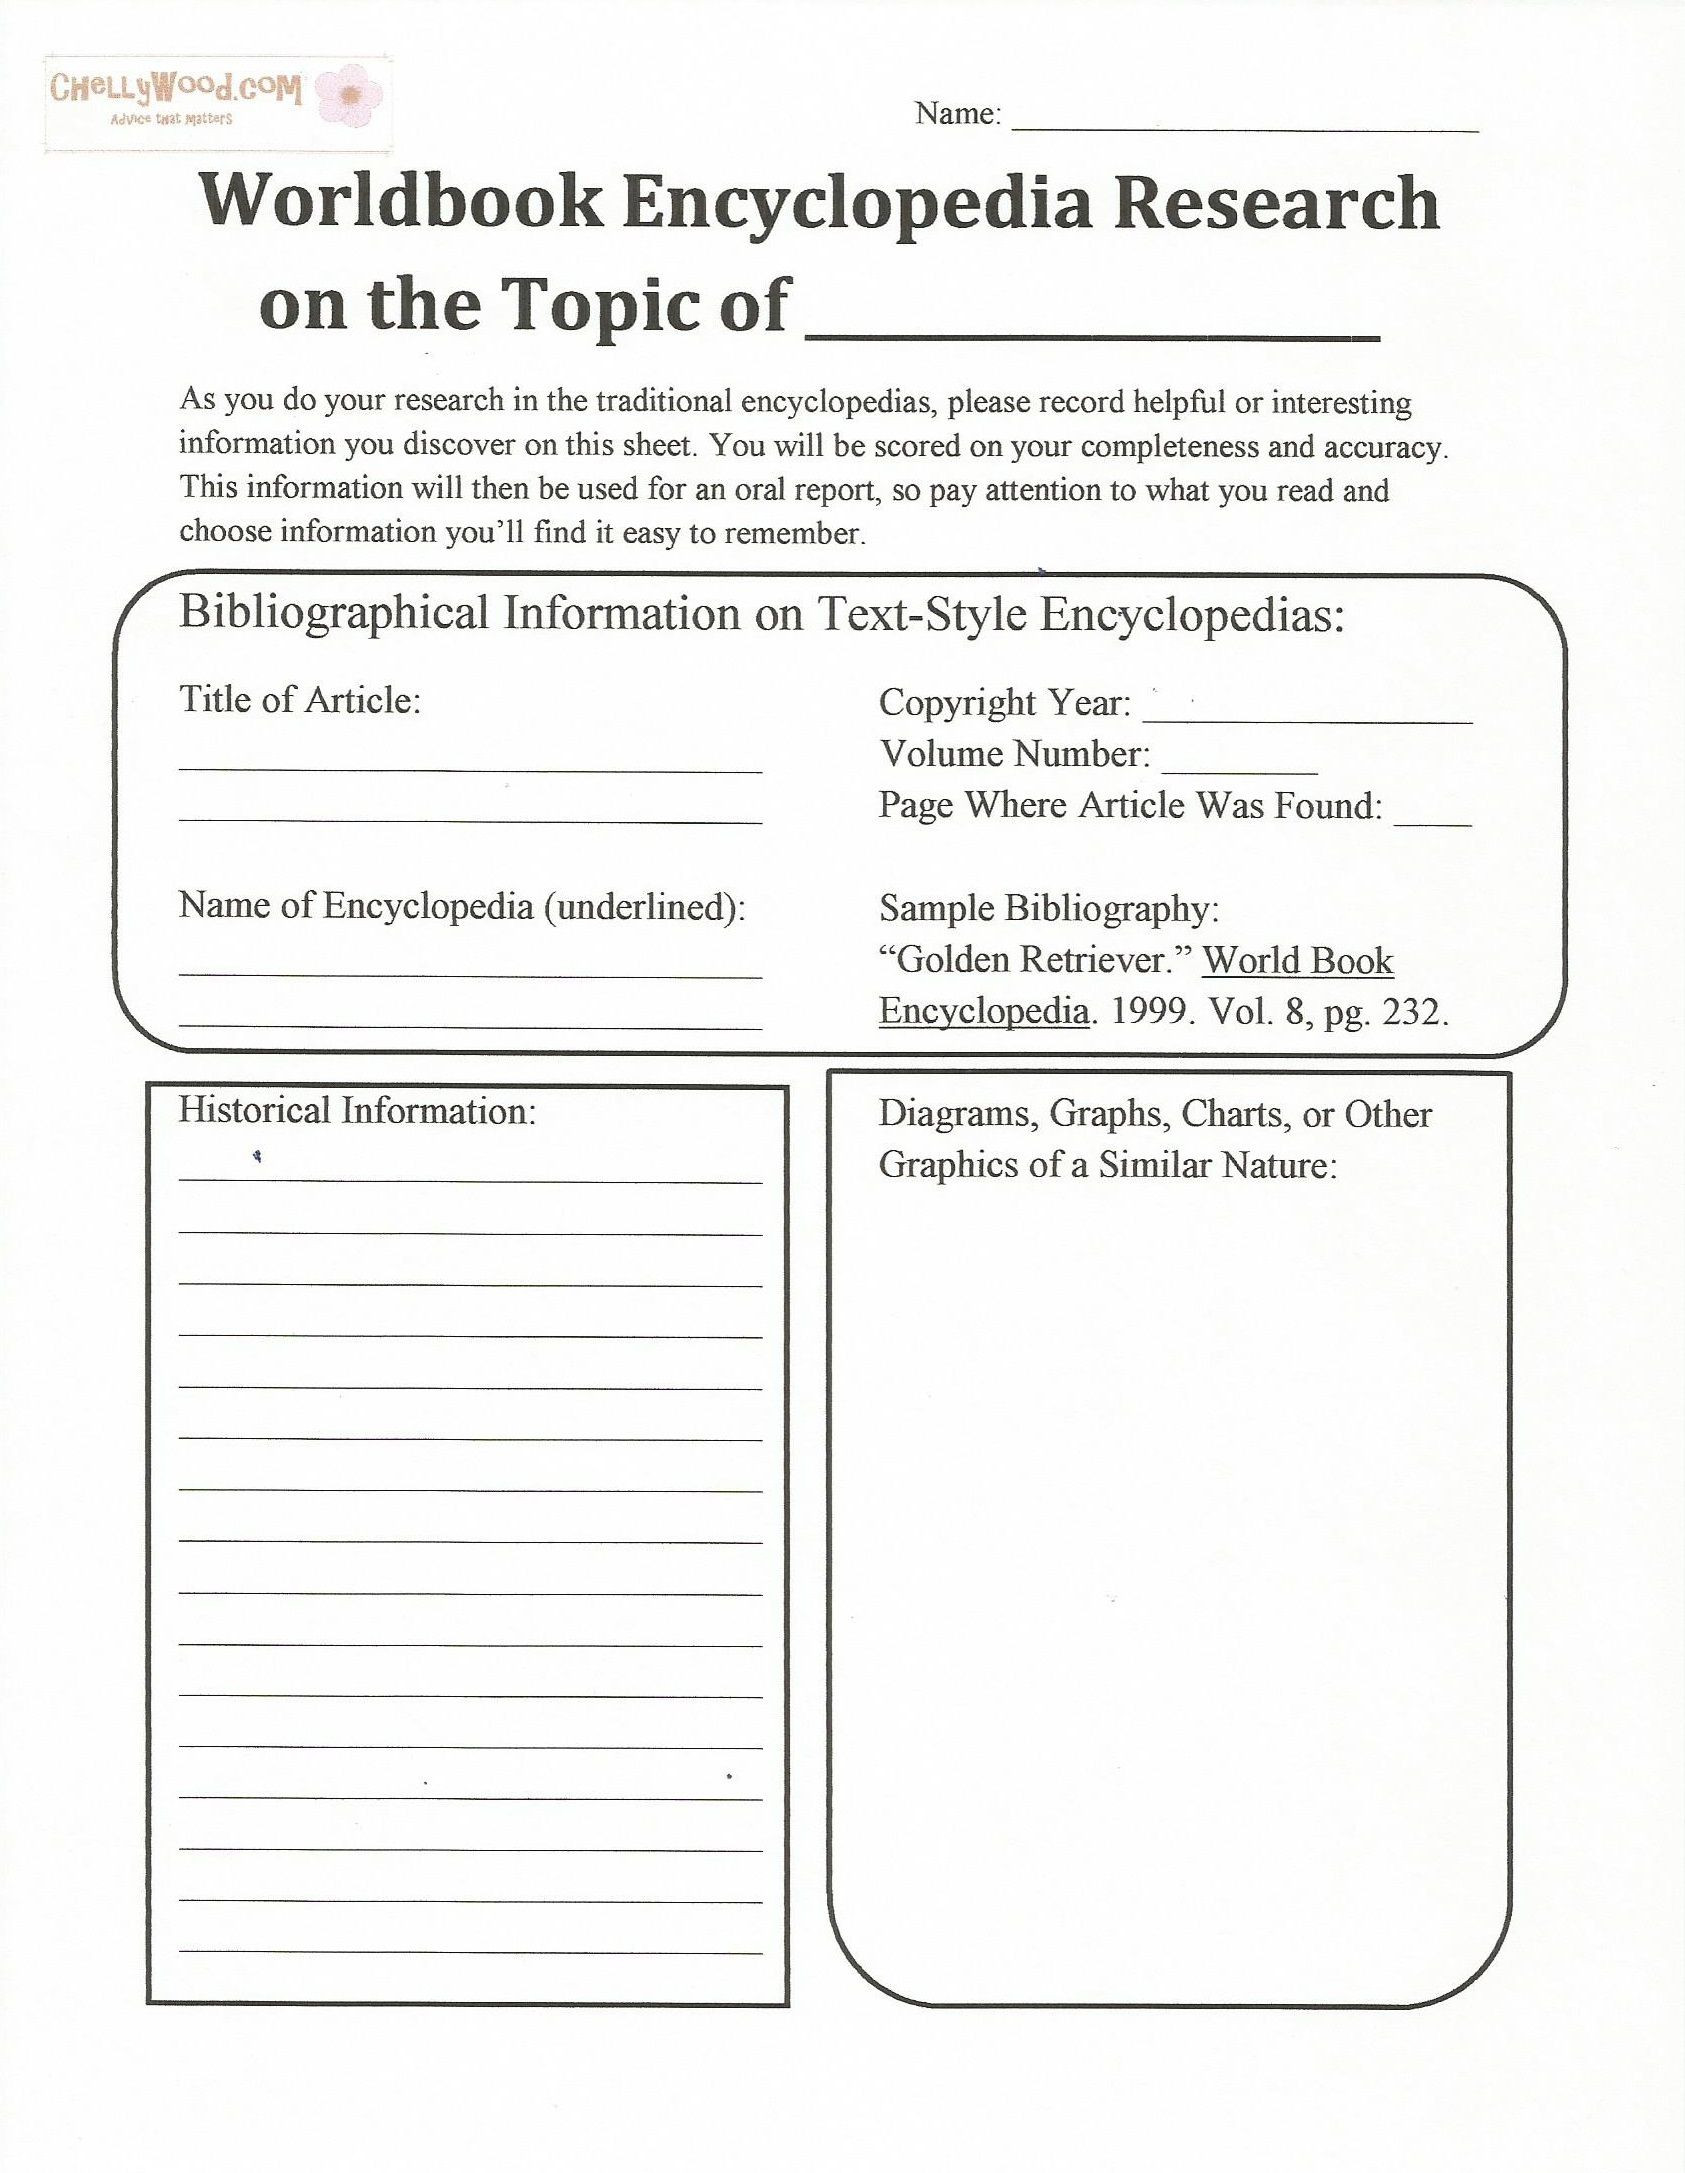 Analogy Worksheets for Middle School Worldbook Research Worksheet for Middle Schoolers Pg 1 Es